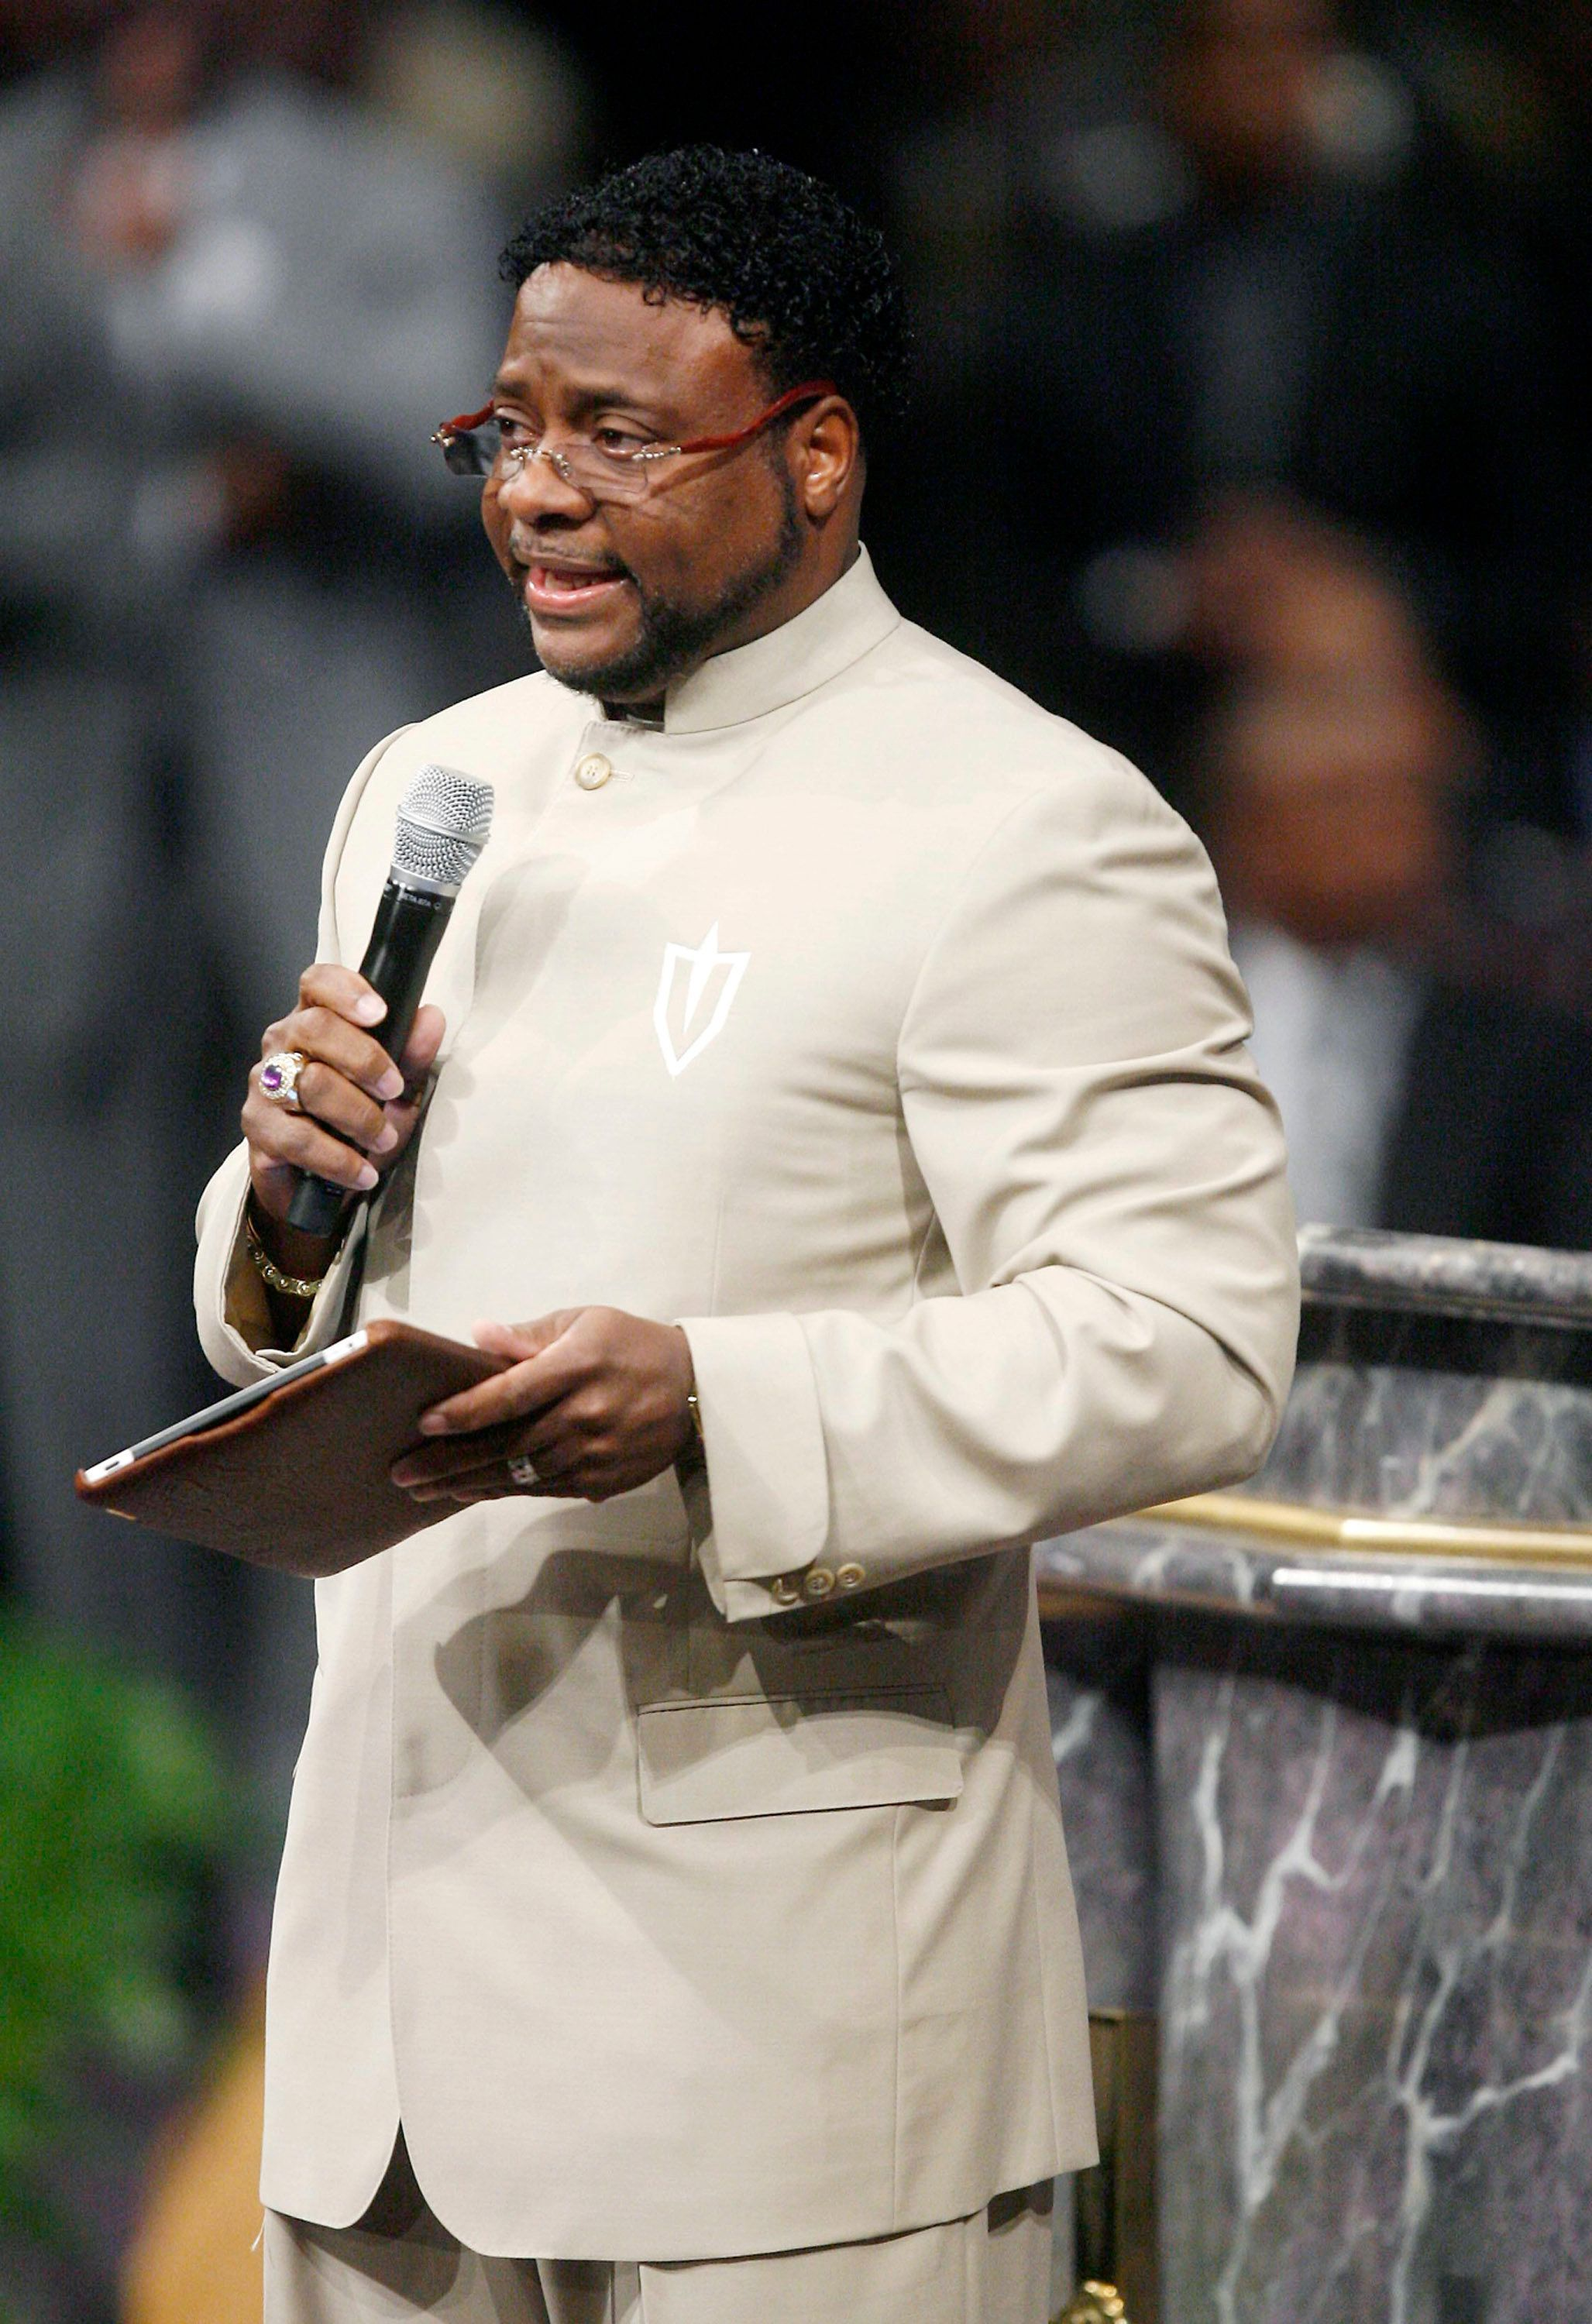 LITHONIA, GA - SEPTEMBER 26:  Bishop Eddie Long gives a sermon where he addressed sex scandal allegations at the New Birth Missionary Baptist Church September 26, 2010 in Atlanta, Georgia.  Bishop Eddie Long, the pastor of a Georgia megachurch was accused of luring young men into sexual relationships, has told his congregation of thousands that he denies all the allegations and that all people must face painful and distasteful situations.  (Photo by John Amis-Pool/Getty Images)